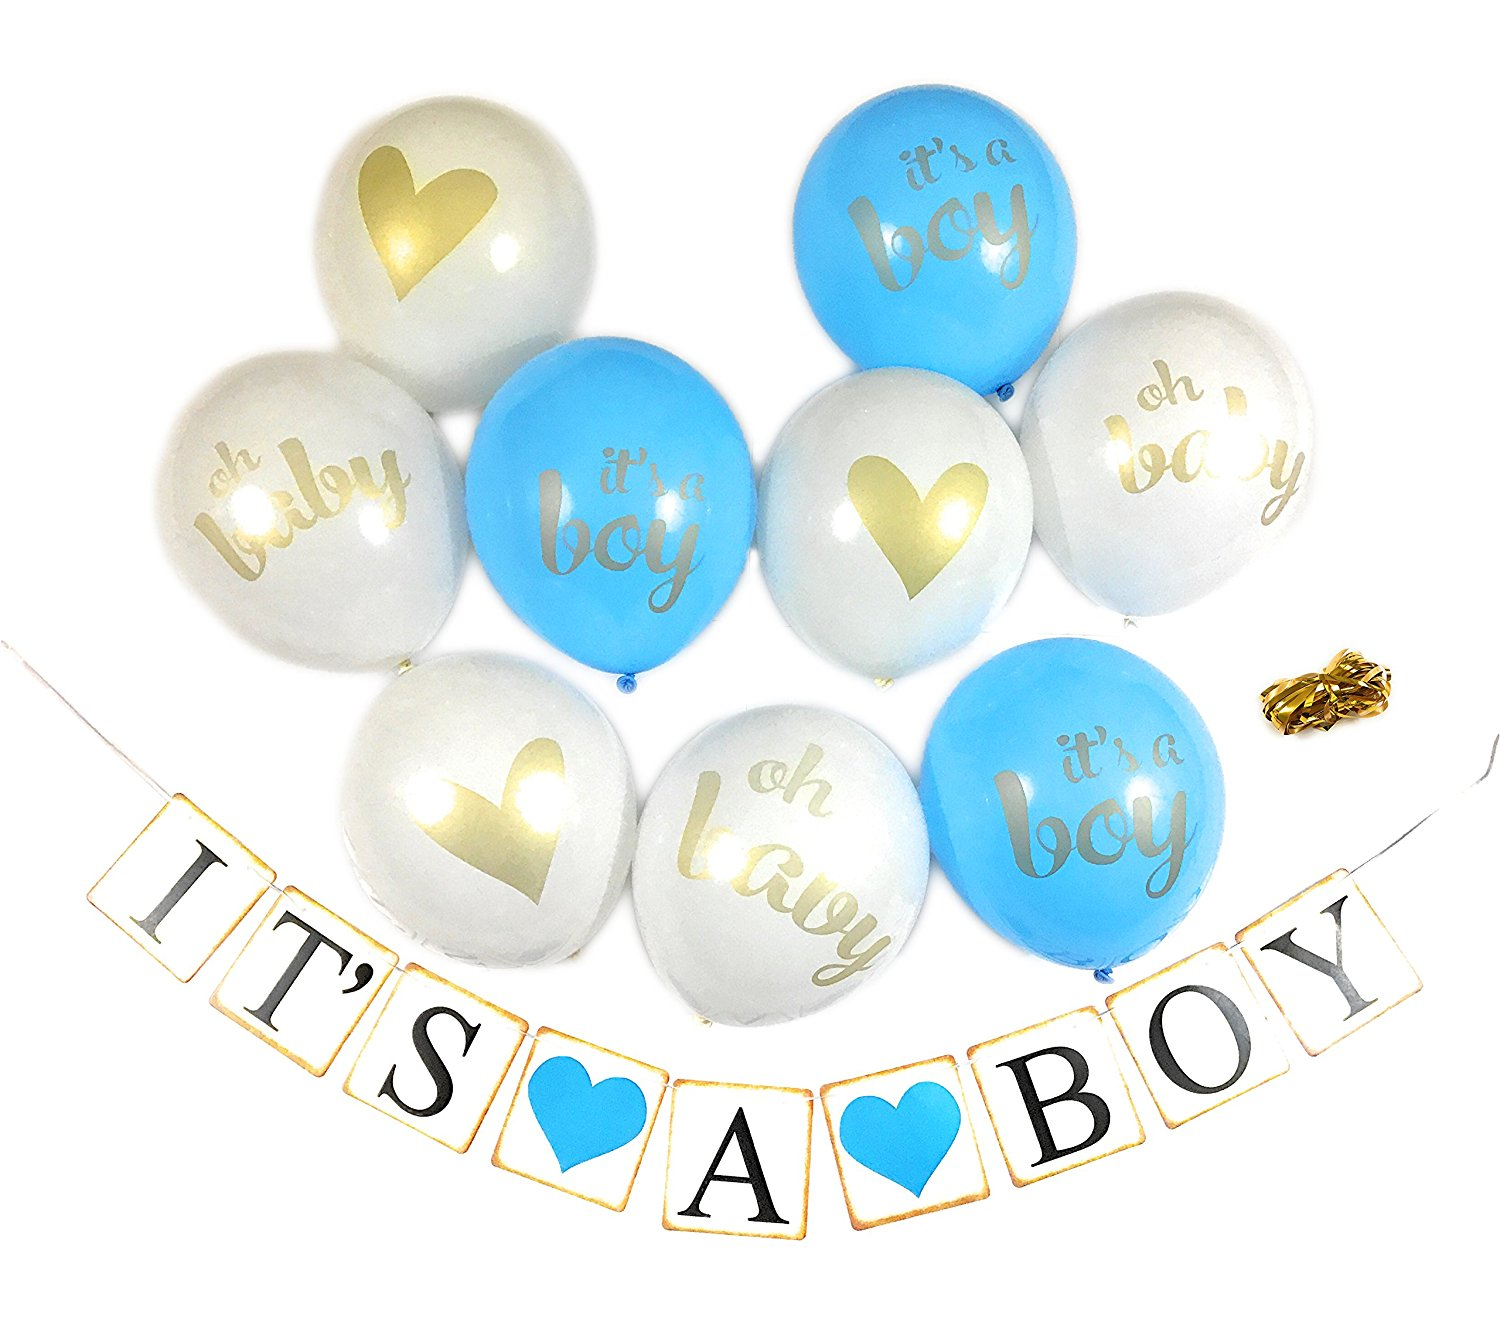 Baby Shower Party Decorations Decoration Decor Assembled Banner (IT'S A BOY) & 9PC Balloons w/ Ribbon [Gold, Baby Blue, White] Kit Set Supplies Bundle | Hang on Wall Door Chair | It Is A Boy